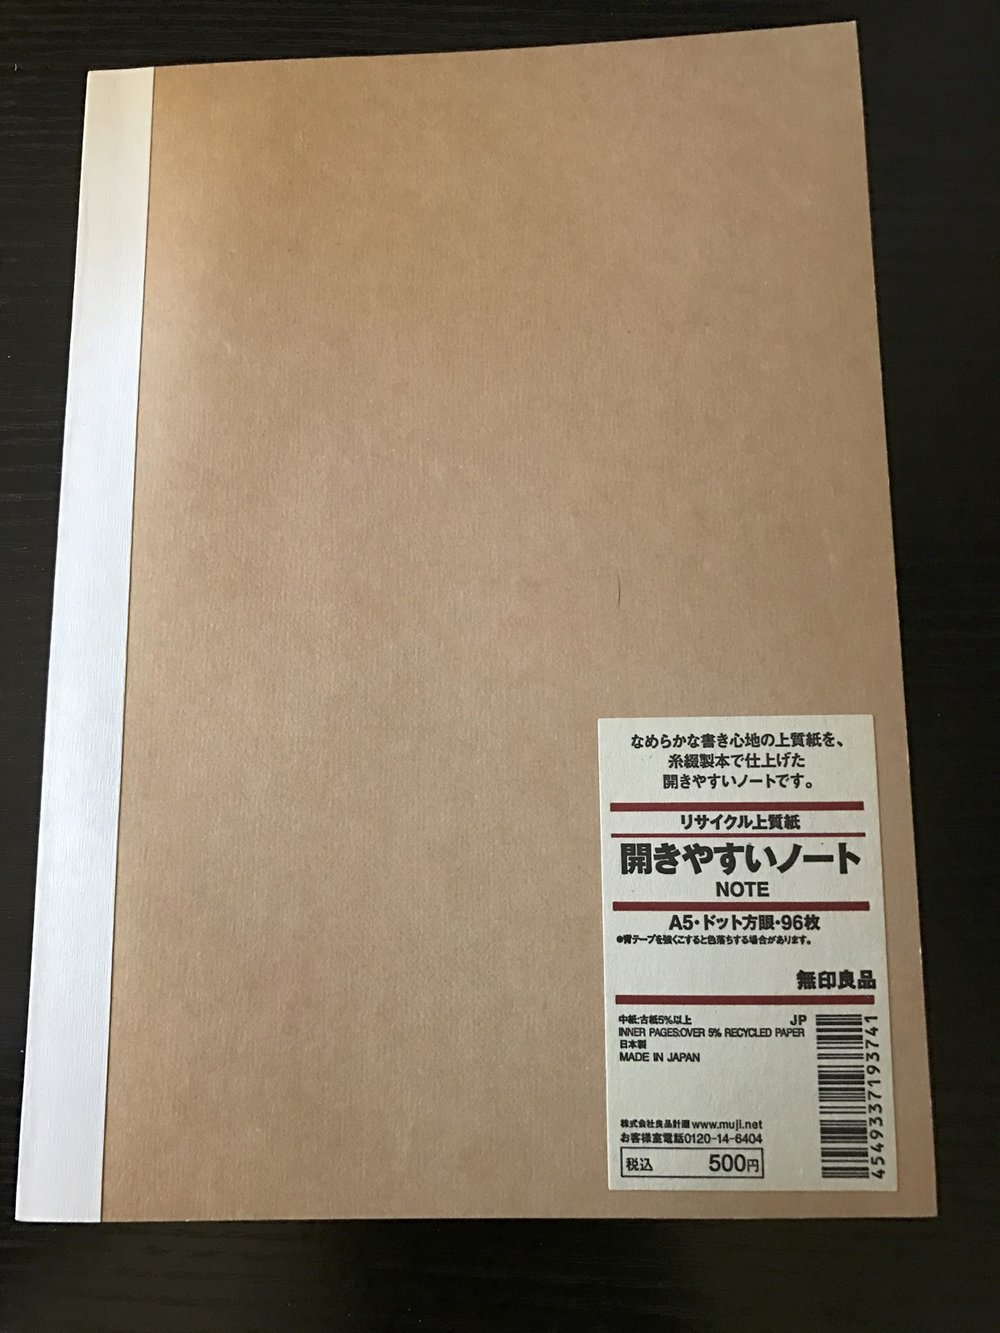 The MUJI notebook has an unassuming appearance.